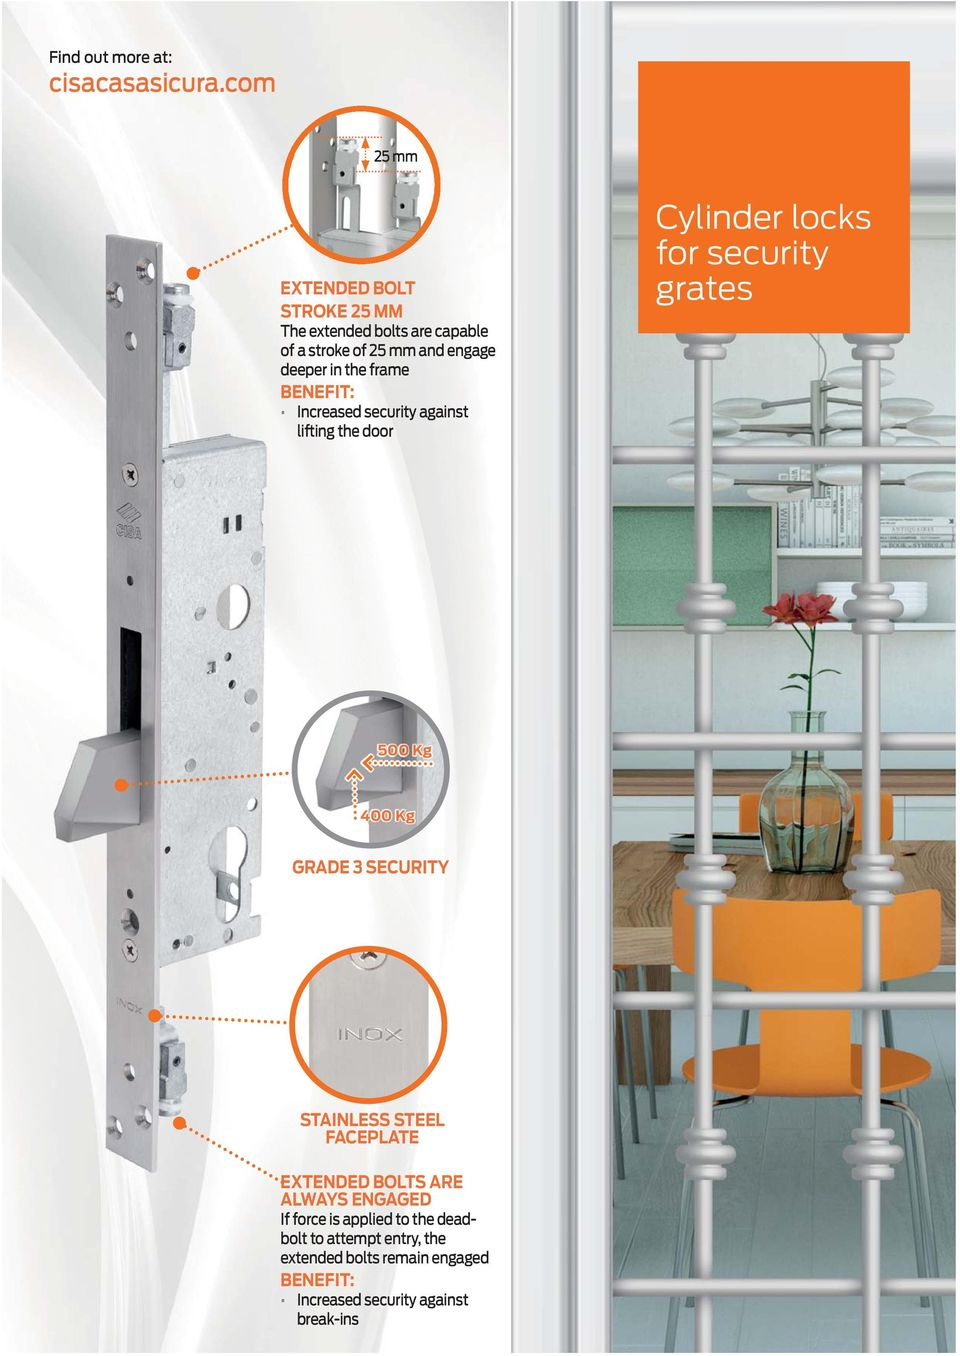 the frame Increased security against lifting the door Cylinder locks for security grates 500 Kg 400 Kg GRADE 3